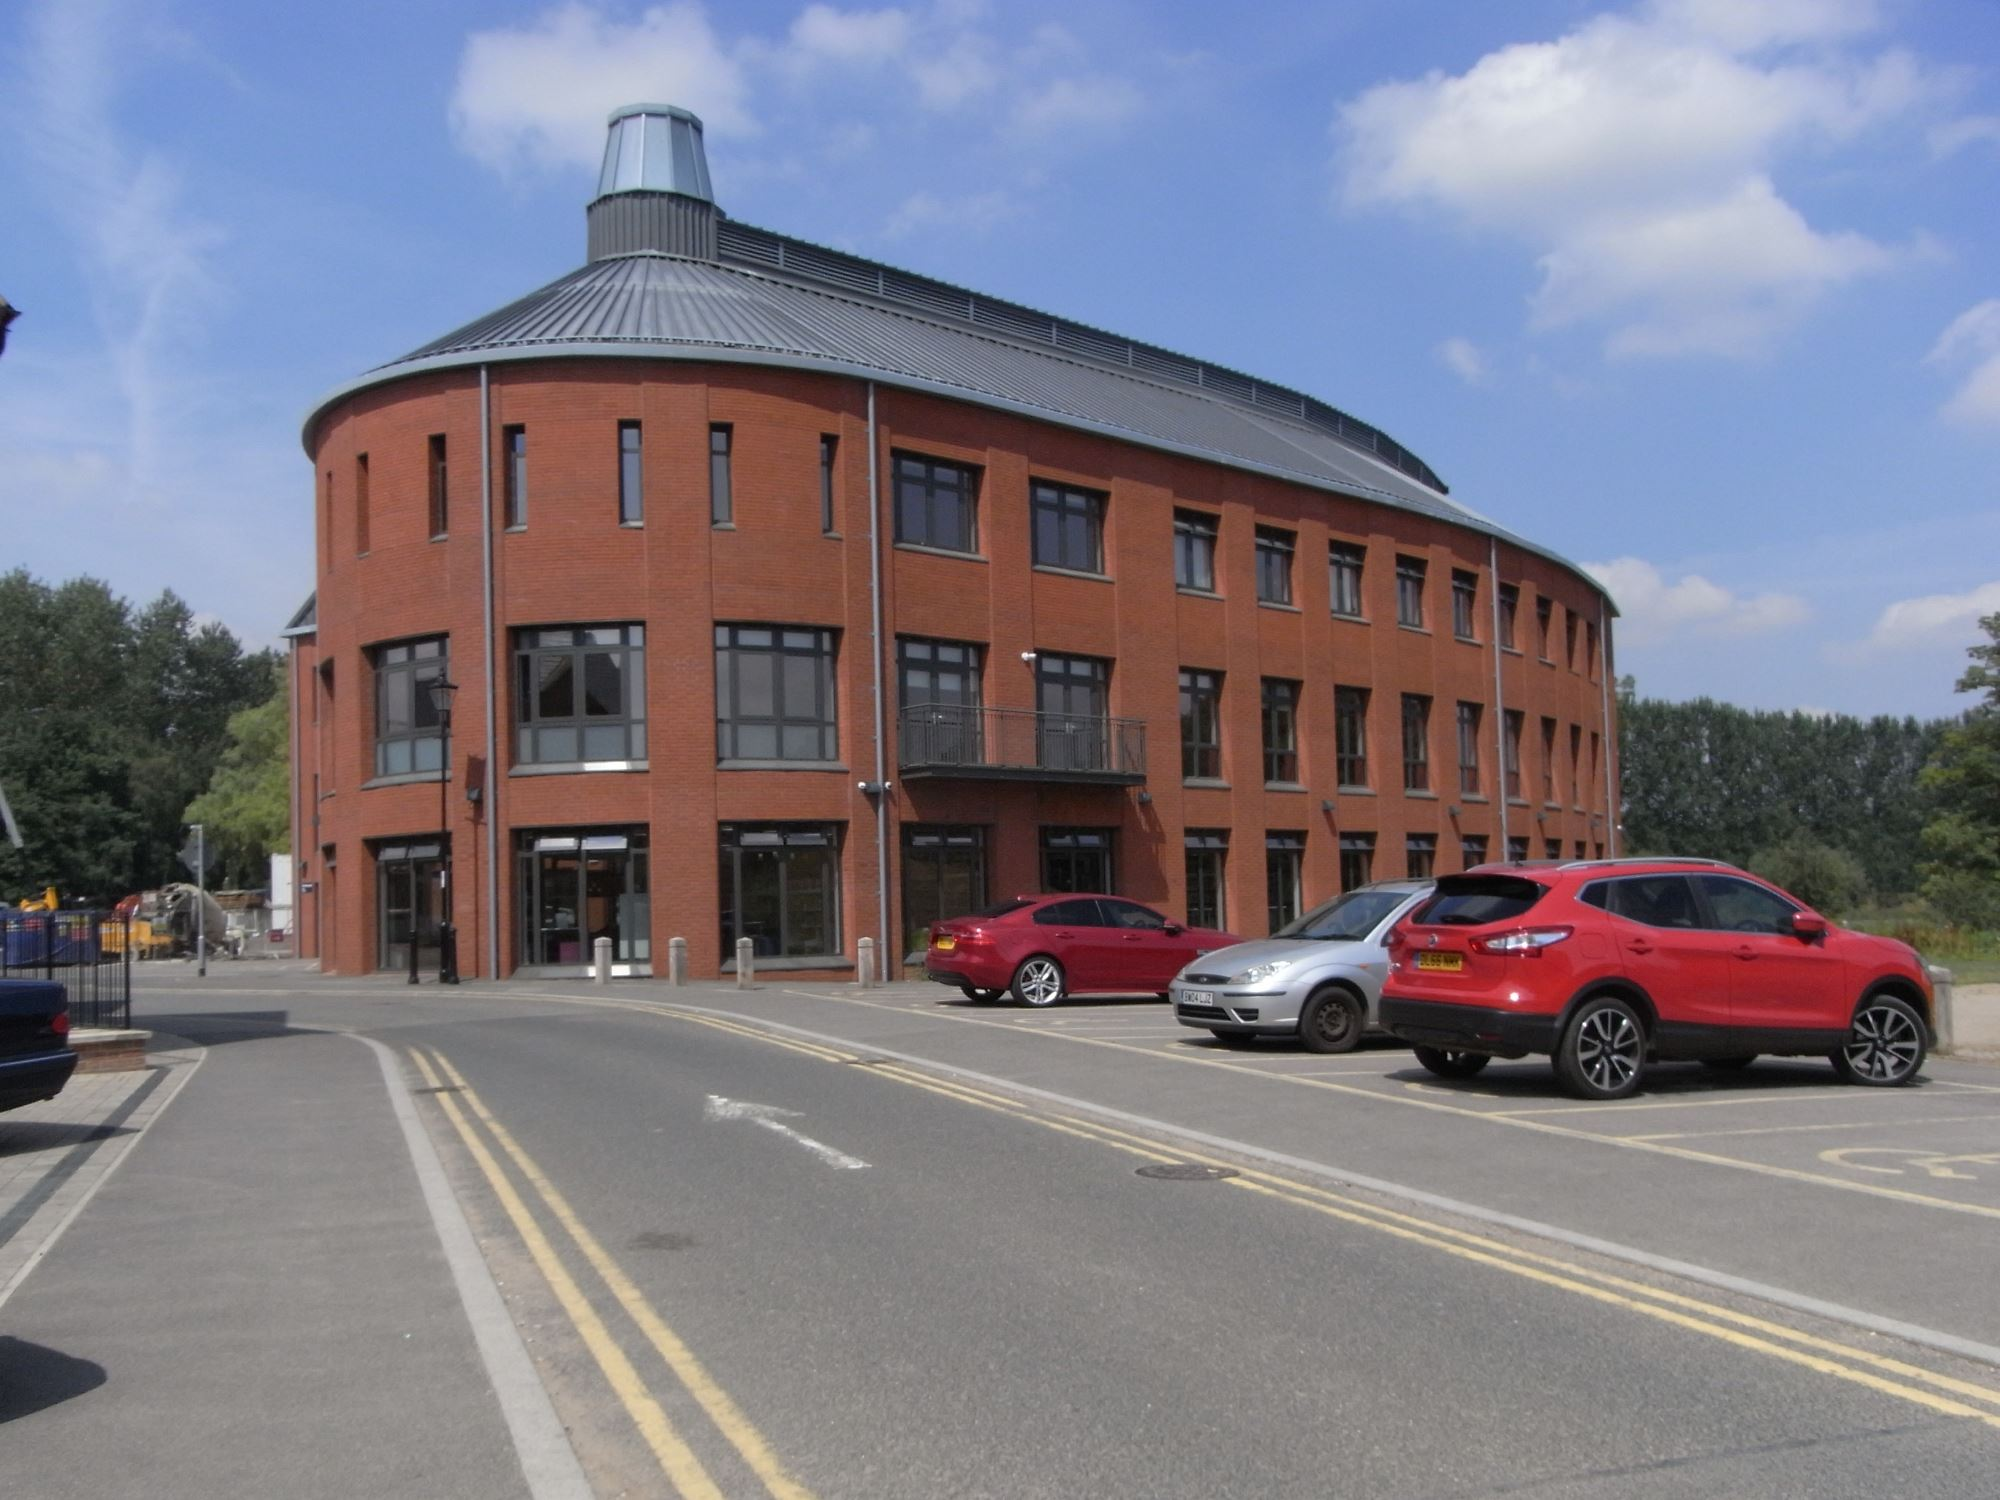 New council offices